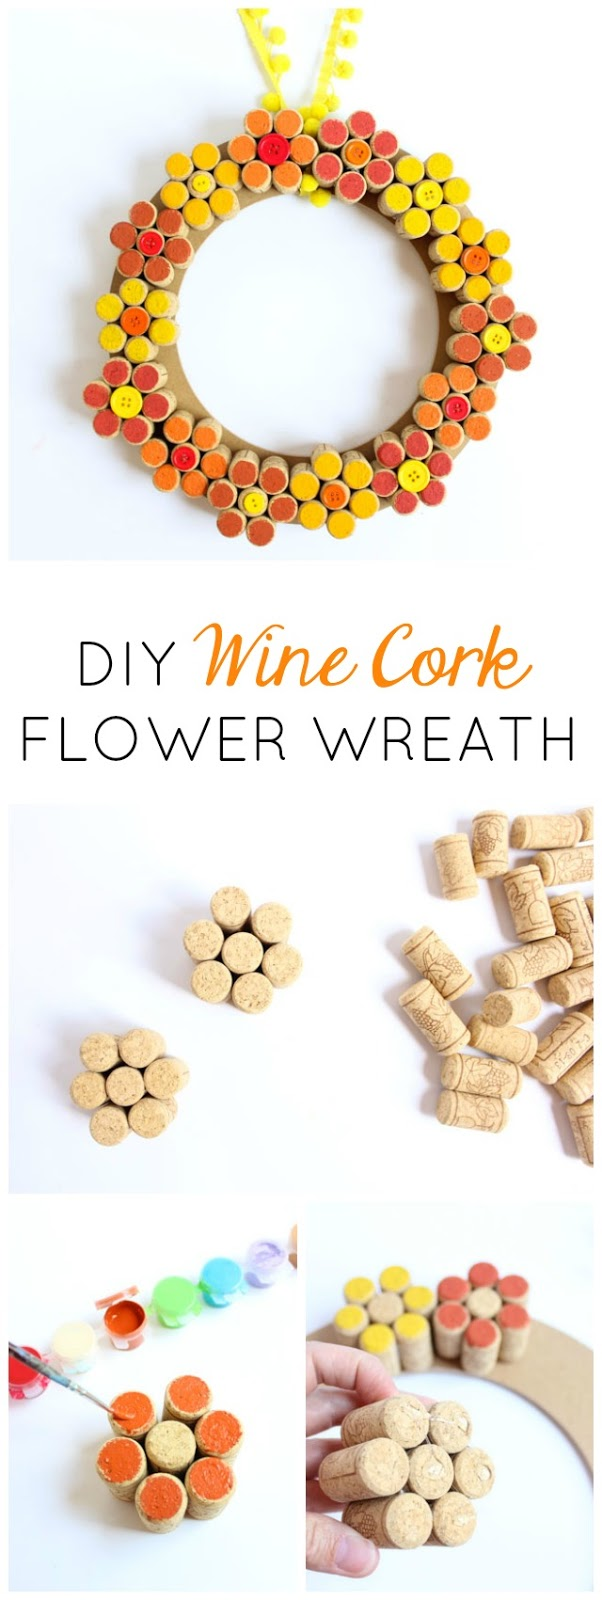 Love this wine cork craft idea - a pretty fall flower wreath!